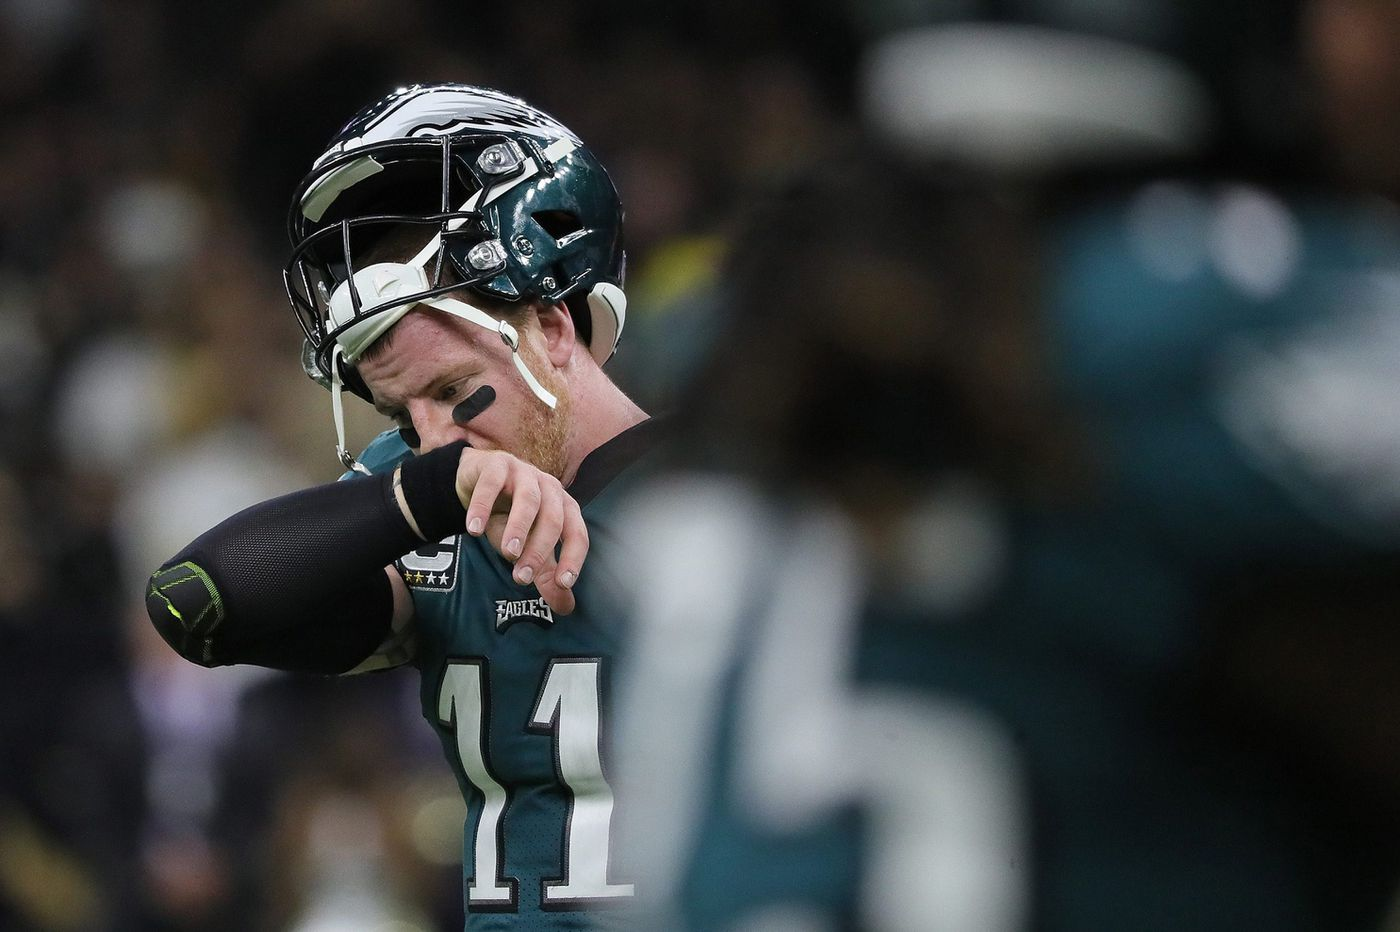 Eagles-Saints: What we learned from the 48-7 rout